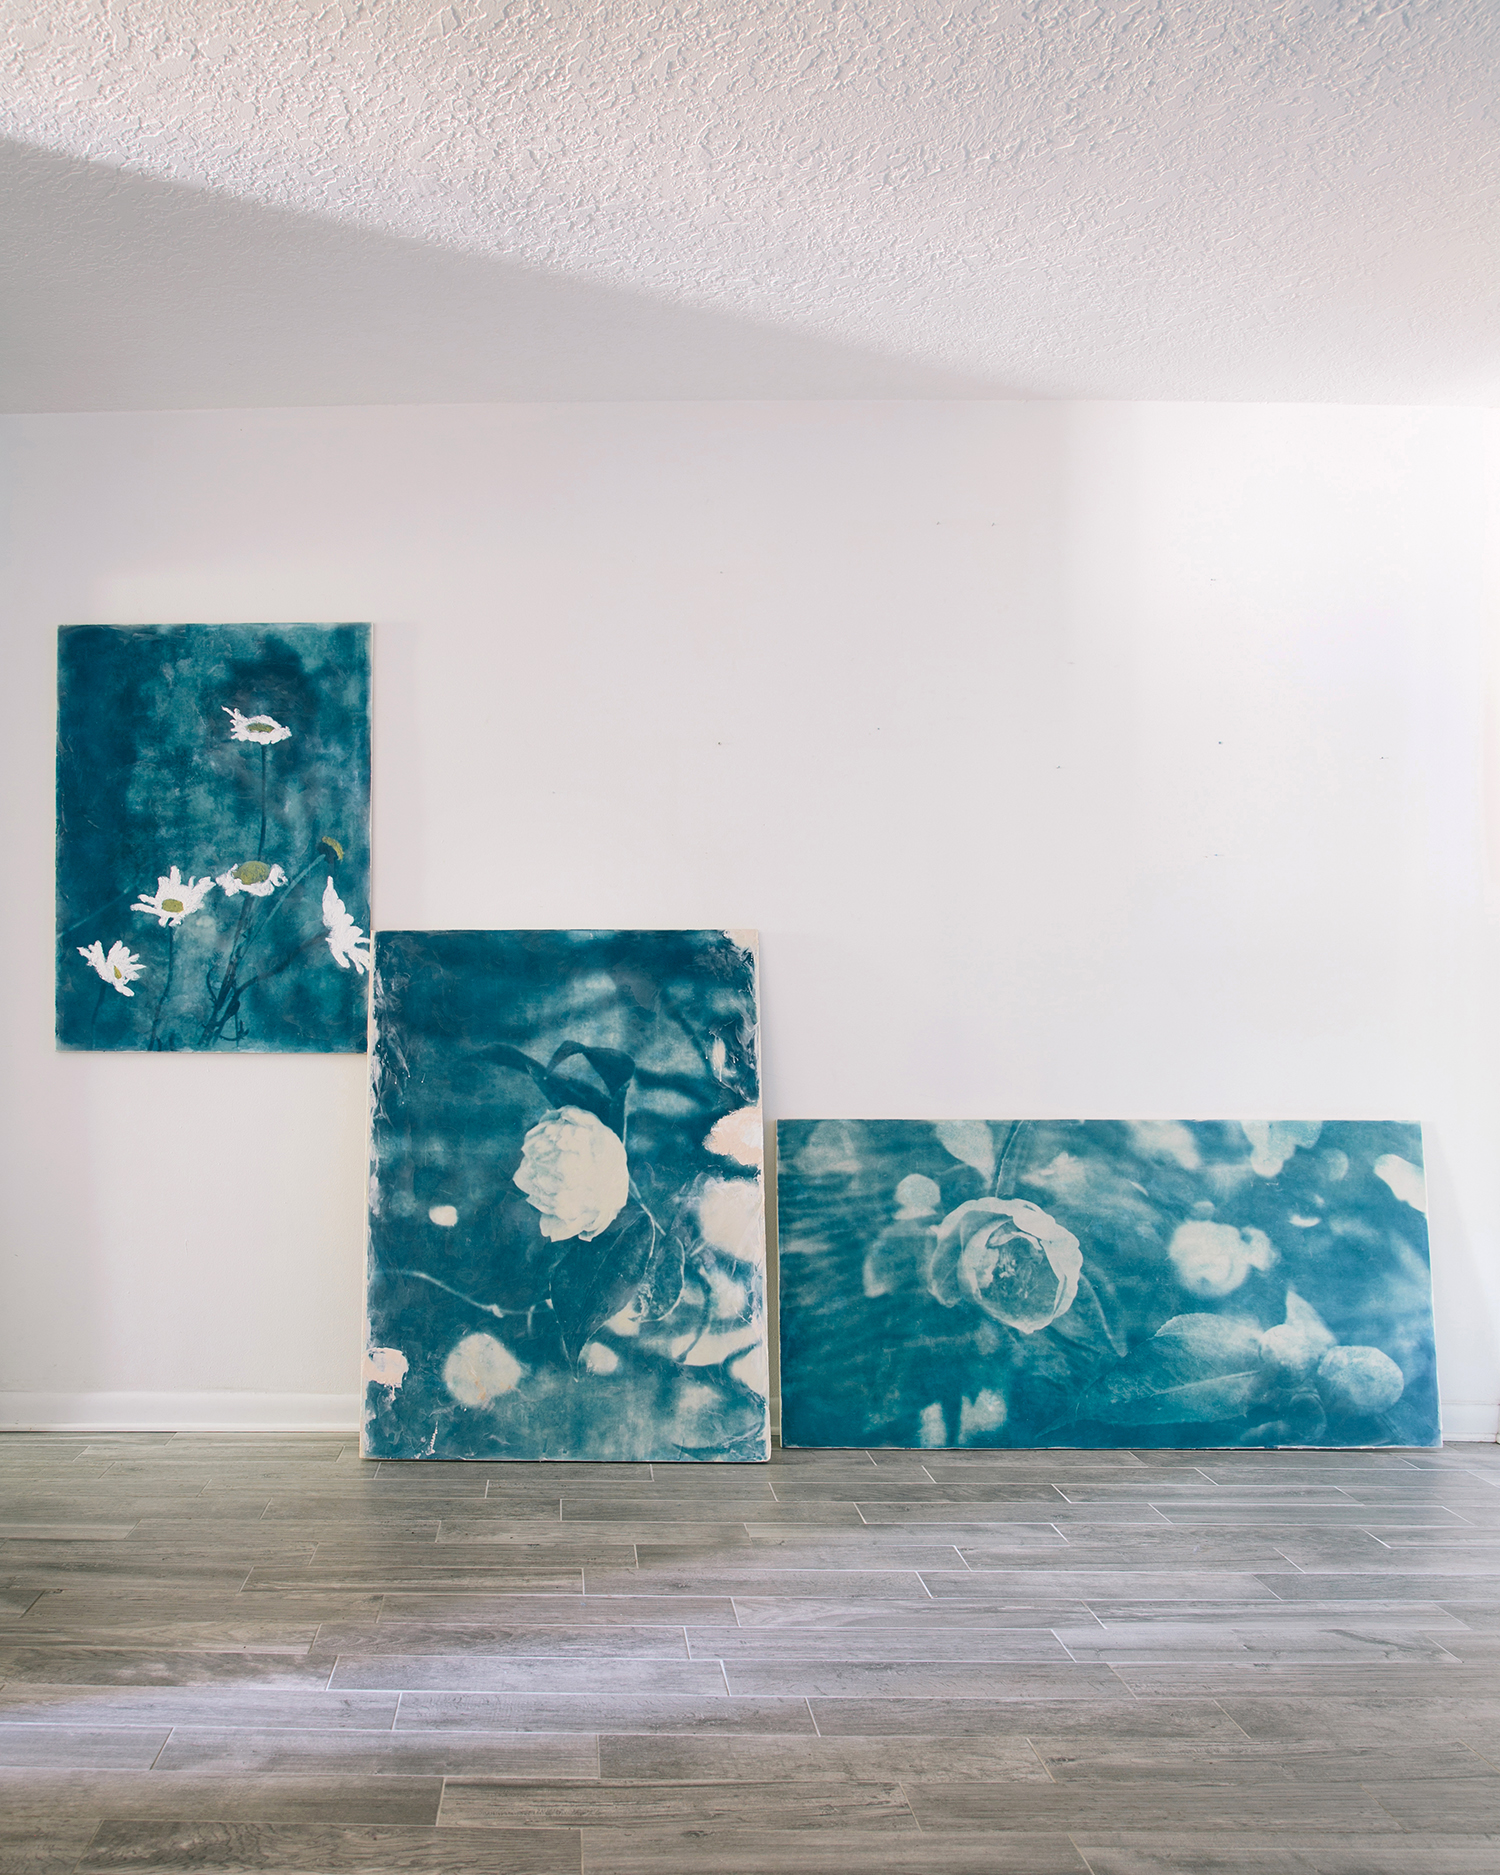 Wallflower Series - Works about mental illness, sexual abuse, and relationships